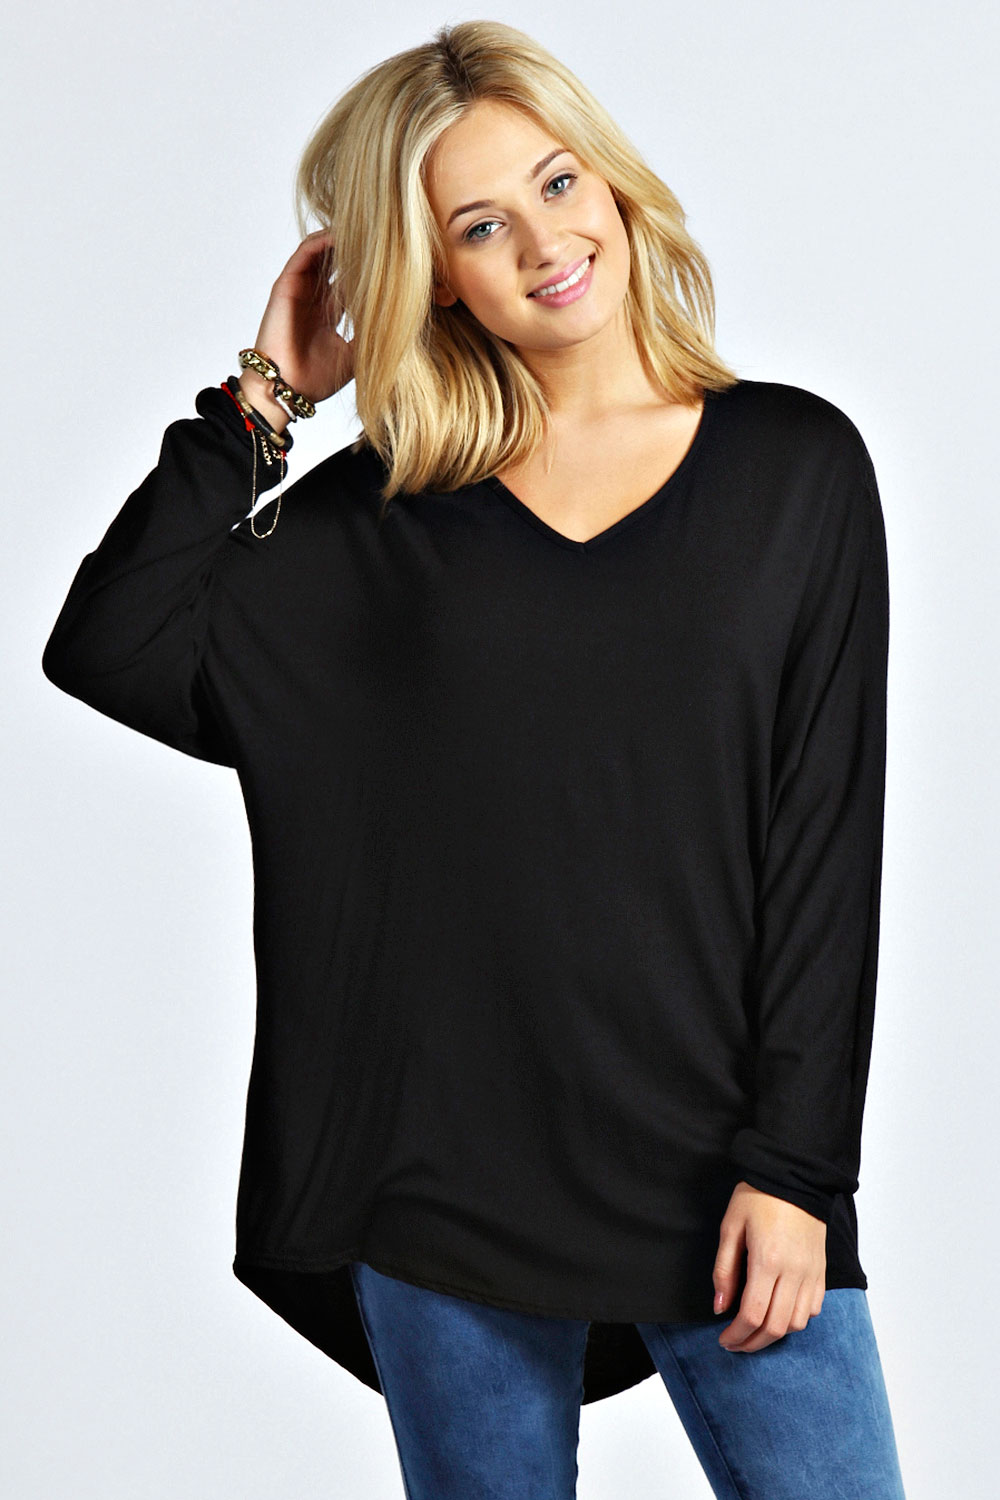 You searched for: oversized women tops! Etsy is the home to thousands of handmade, vintage, and one-of-a-kind products and gifts related to your search. No matter what you're looking for or where you are in the world, our global marketplace of sellers can help you .